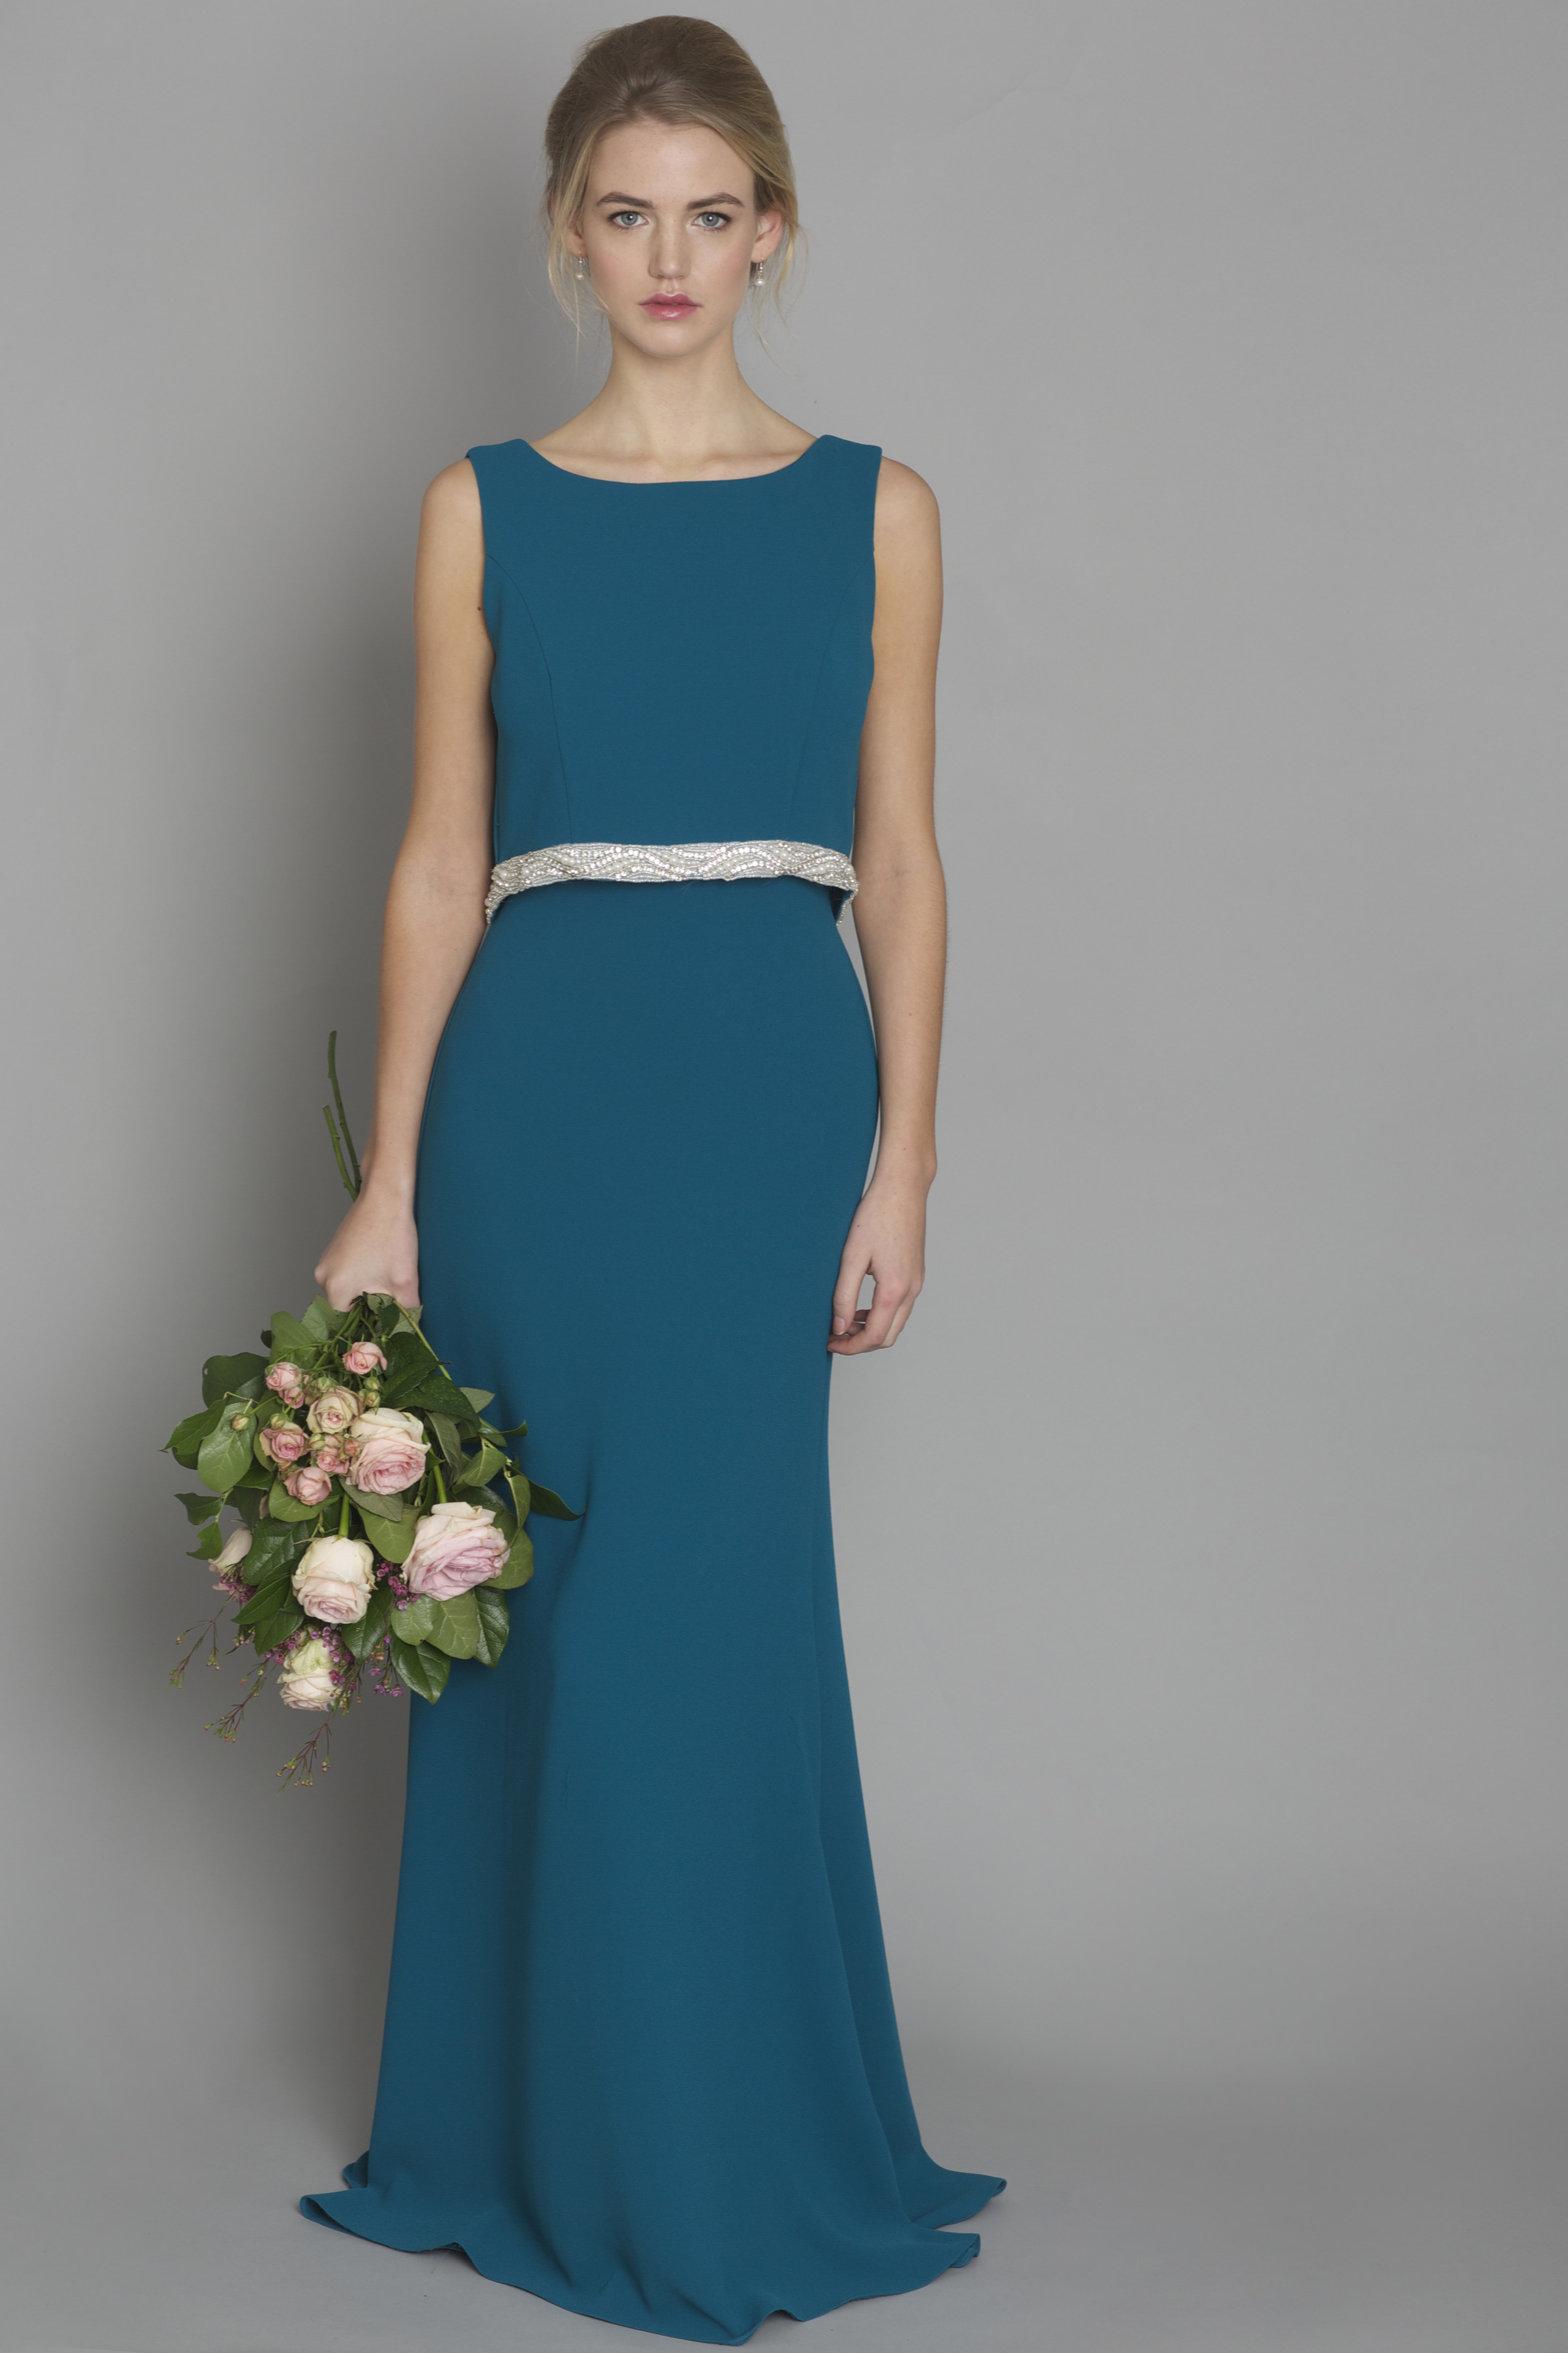 73d0762dfb8 Teal style DC1180 - Bridesmaid Evening   Debs Dresses from Dresscode